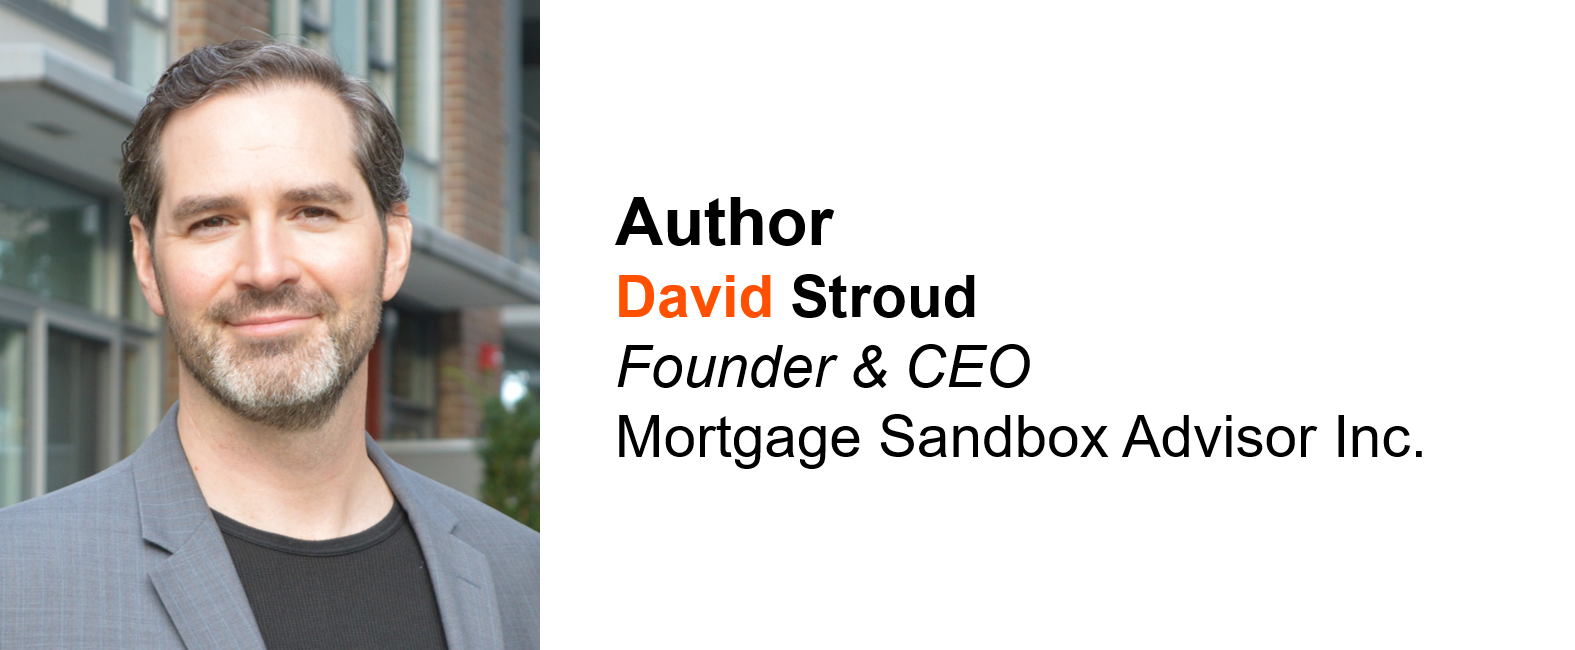 David Stroud, Founder and CEO, Mortgage Sandbox Advisor Inc.